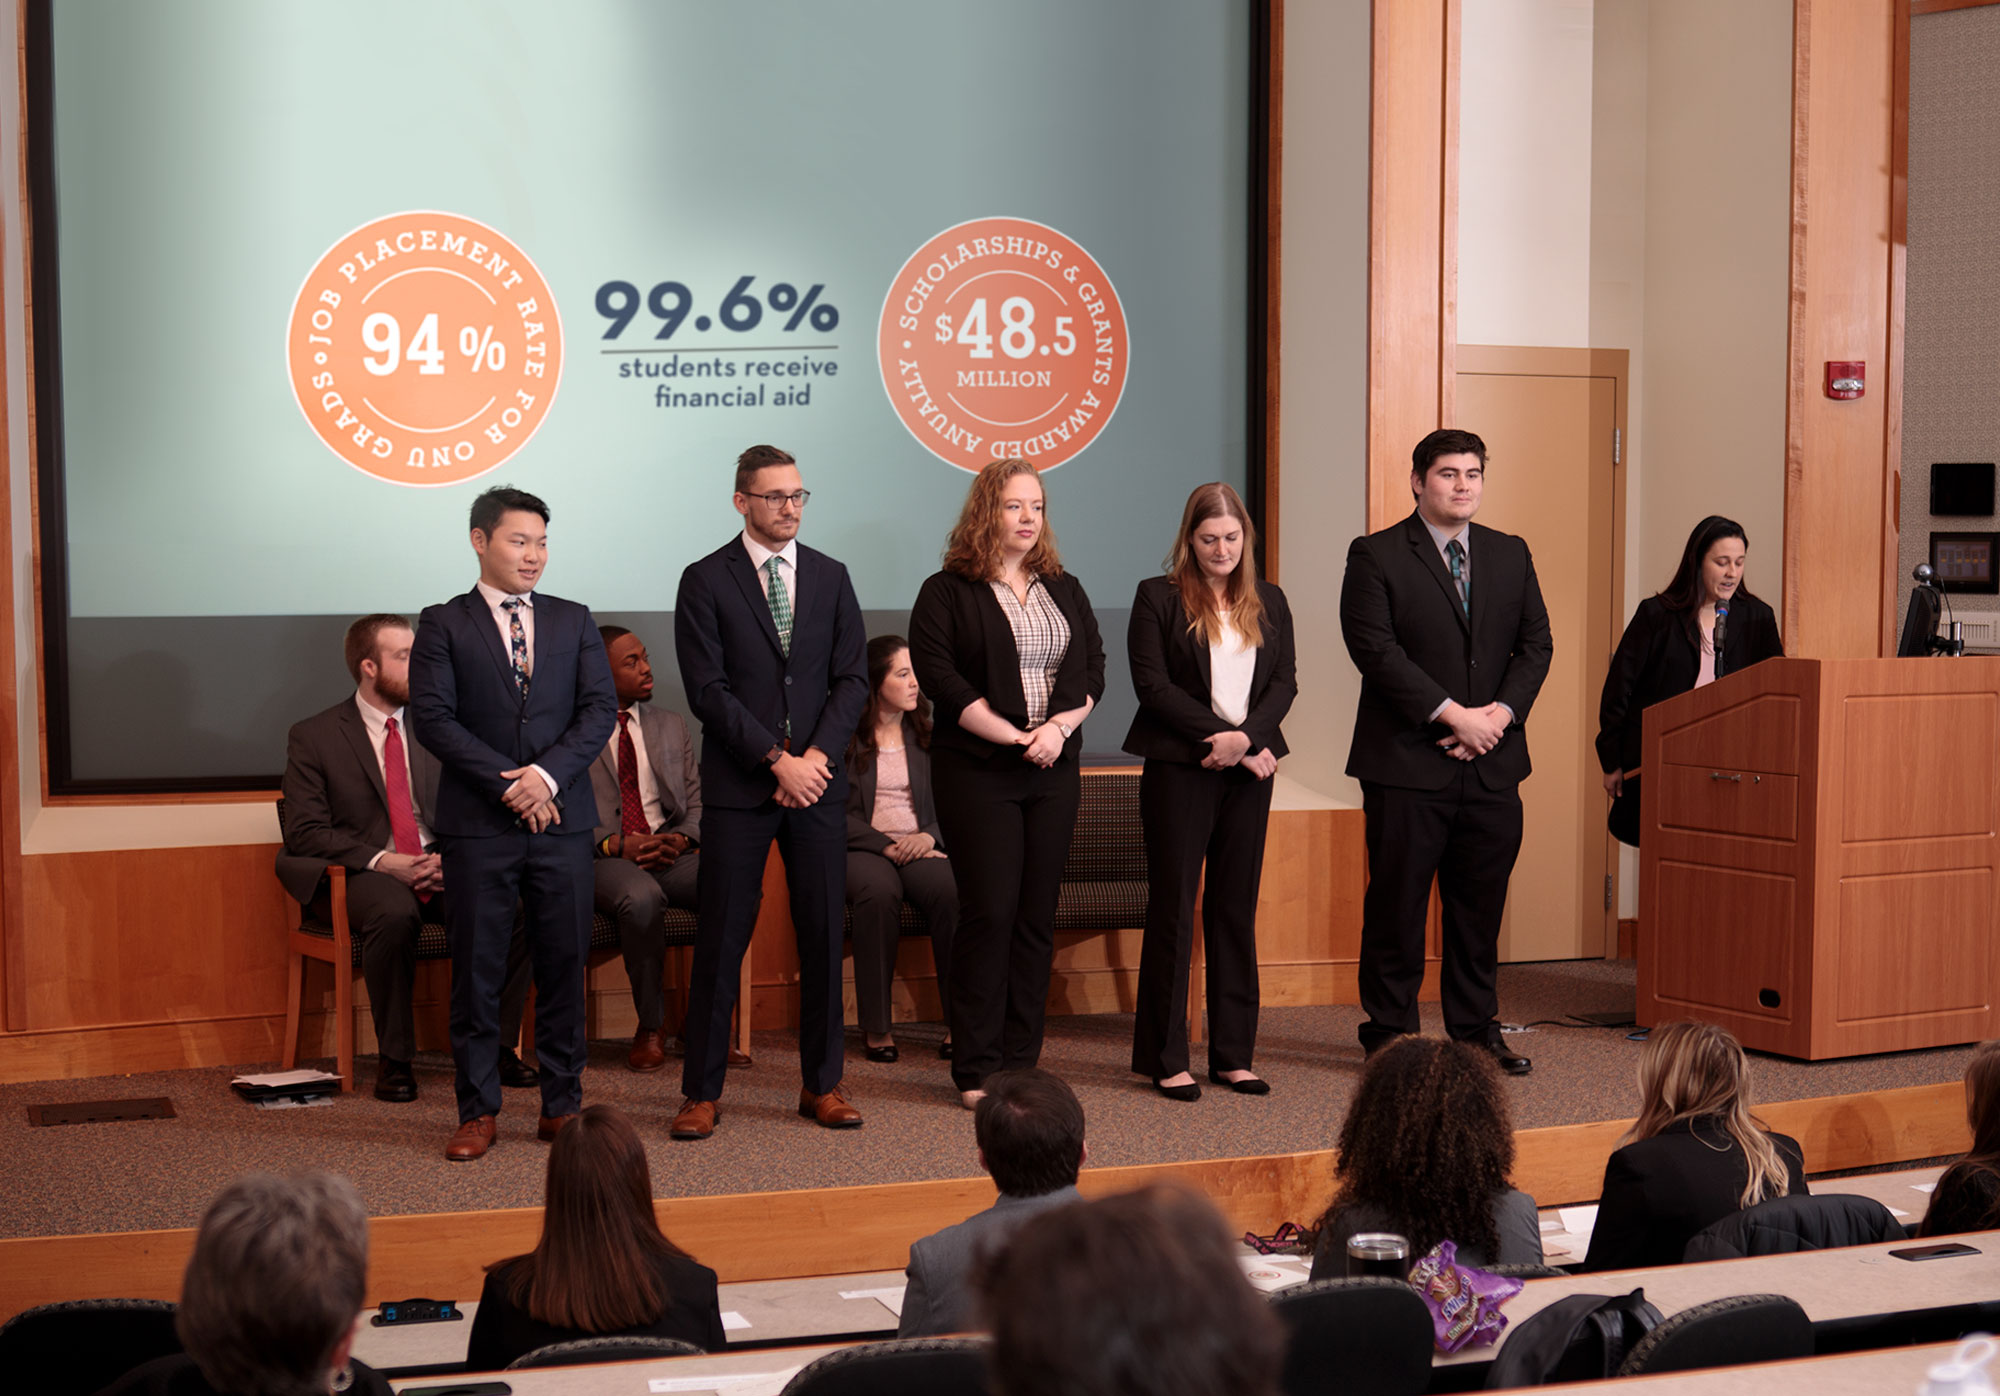 Students on presentation stage